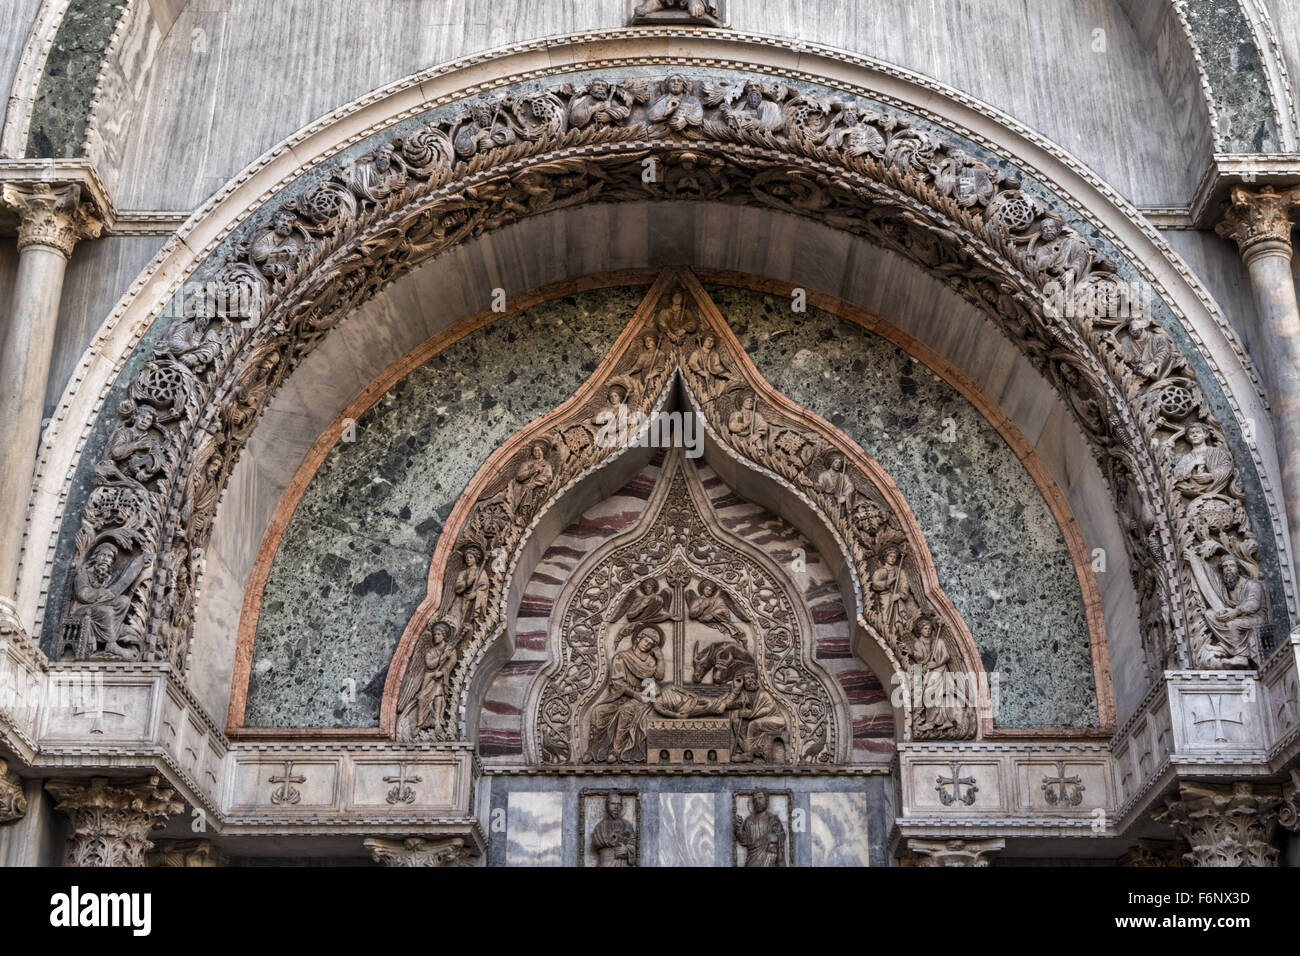 Ornate arch above the entrance to the Doge's Palace, Venice - Stock Image